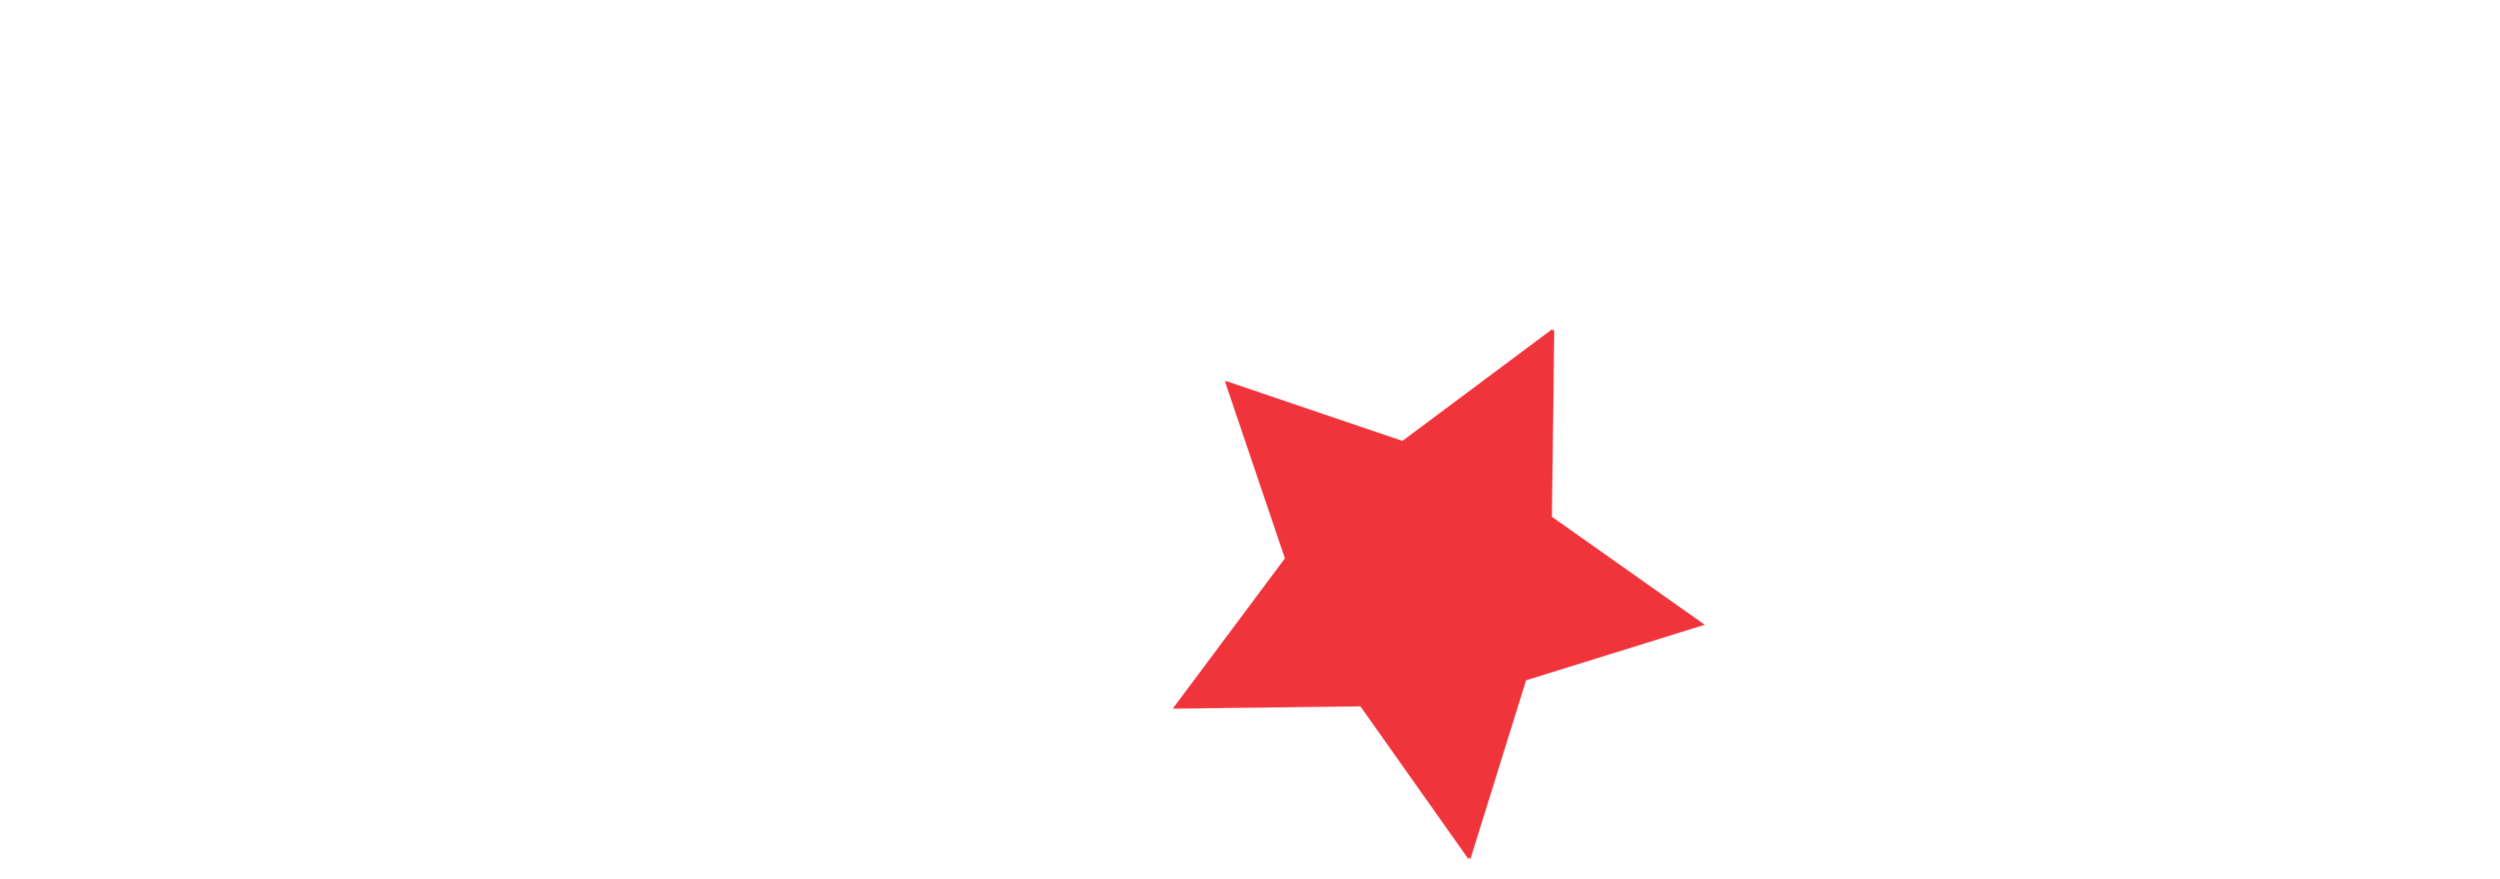 red star angle tumblr banner.png